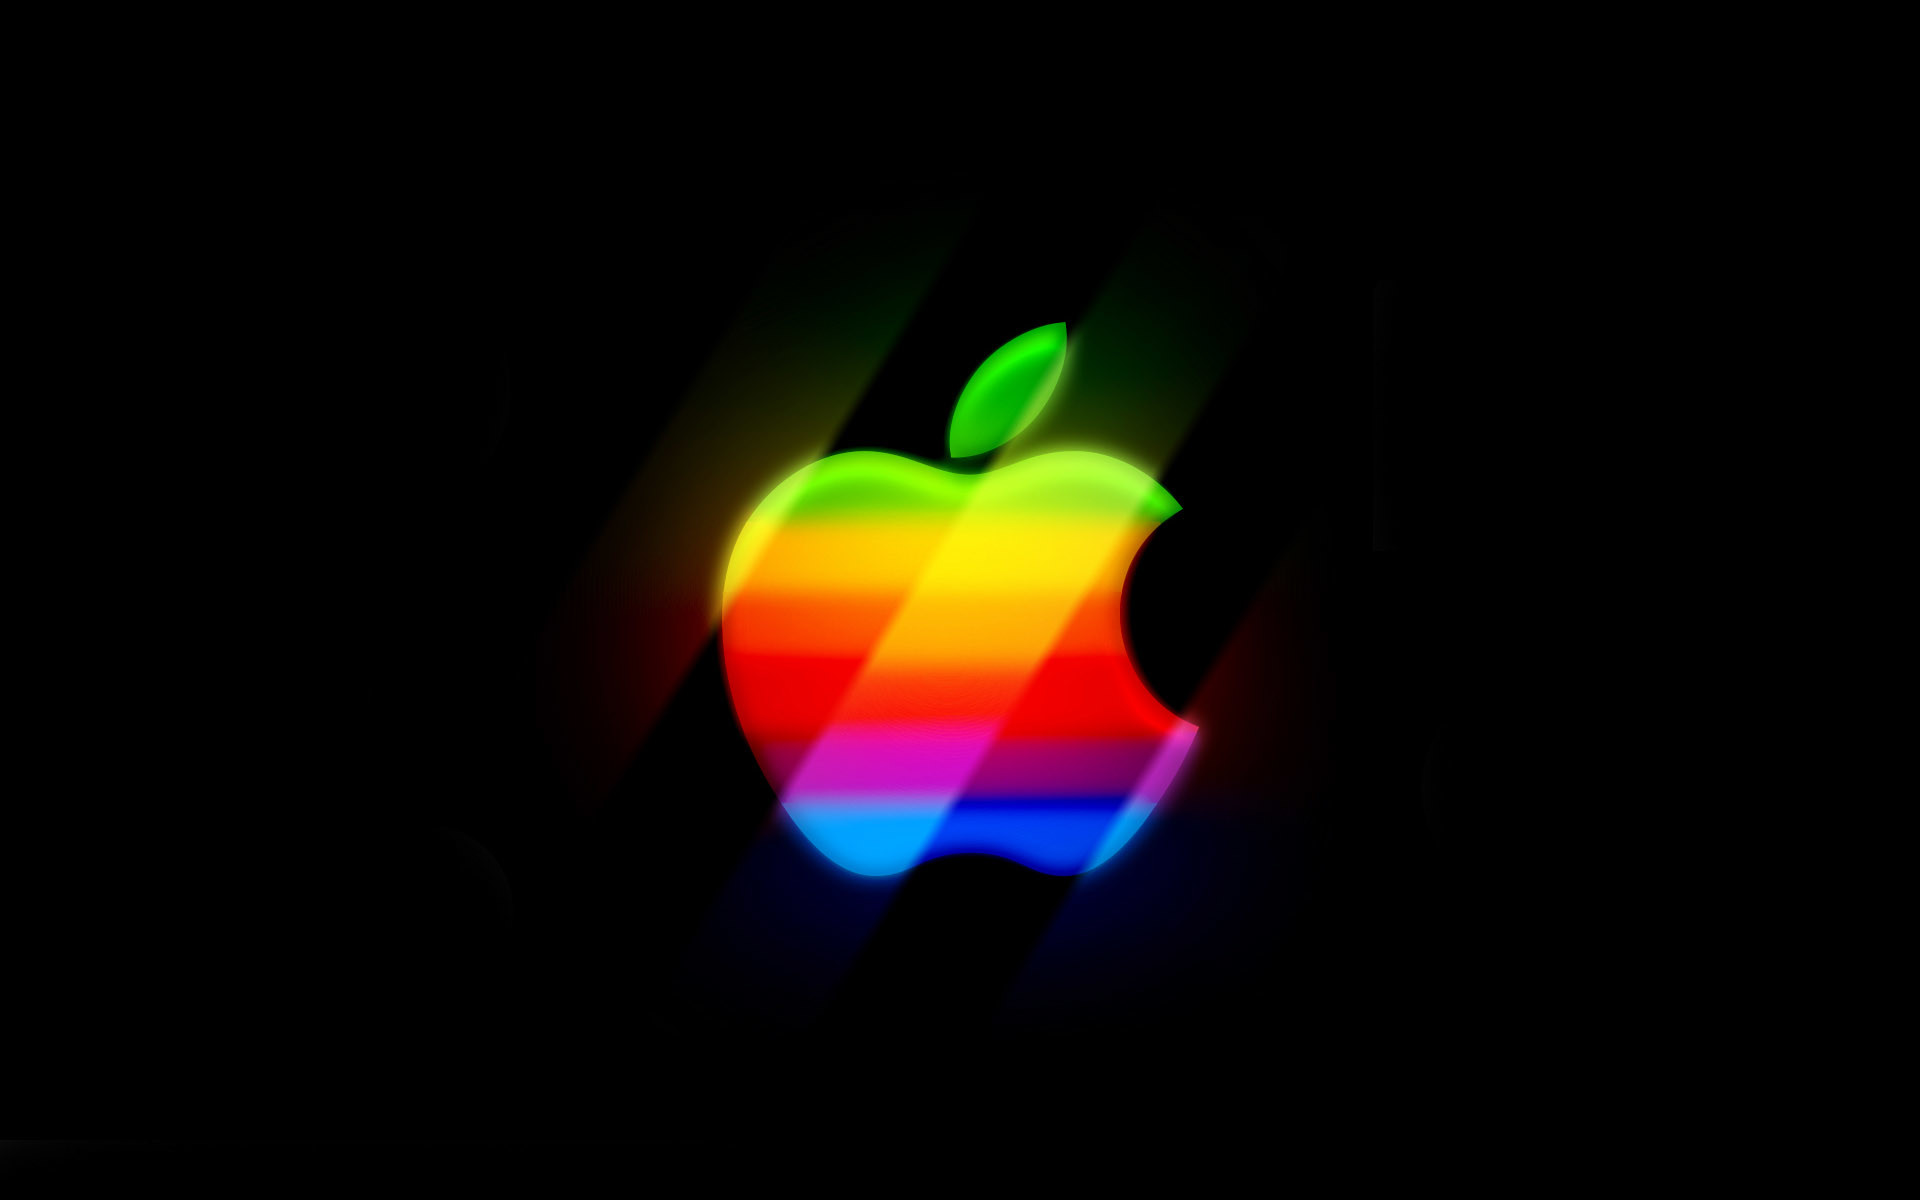 1920x1200 mac hq hd wallpaper 11 500x312 20 Elegant Apple Mac HD Wallpapers Set 3